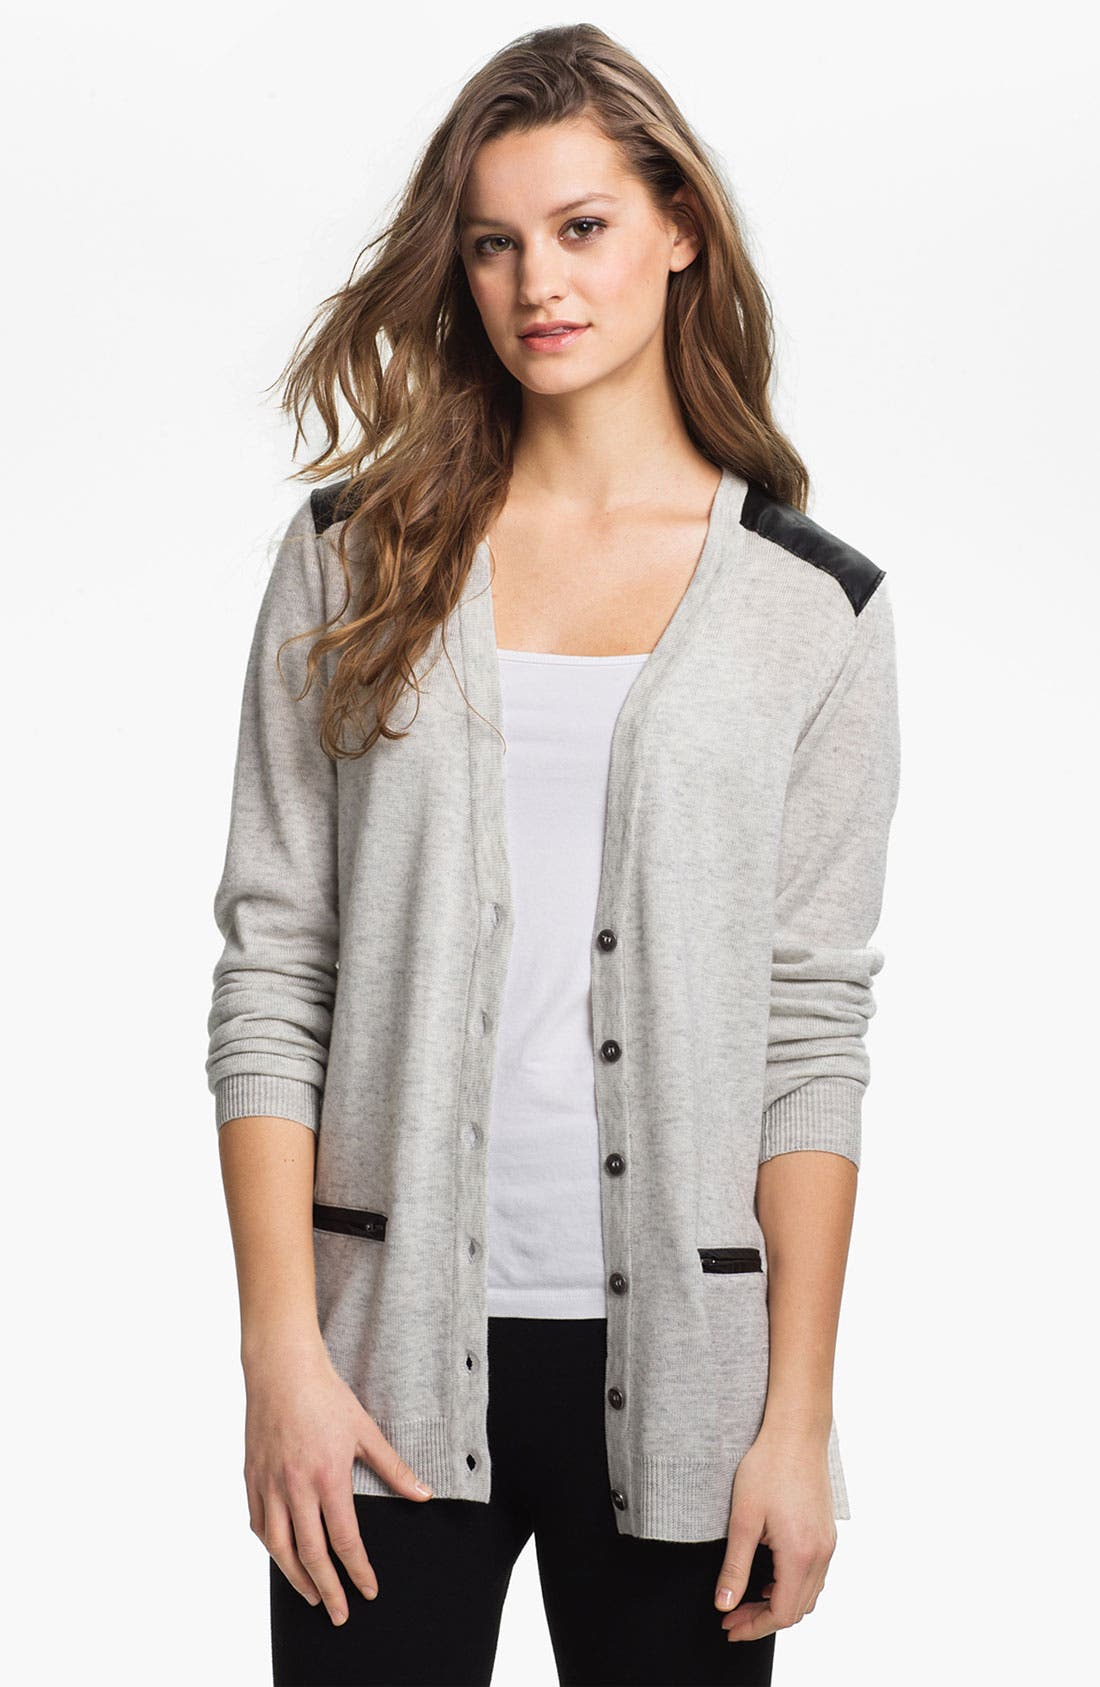 Alternate Image 1 Selected - Max & Mia Leather Trim Cardigan (Online Exclusive)